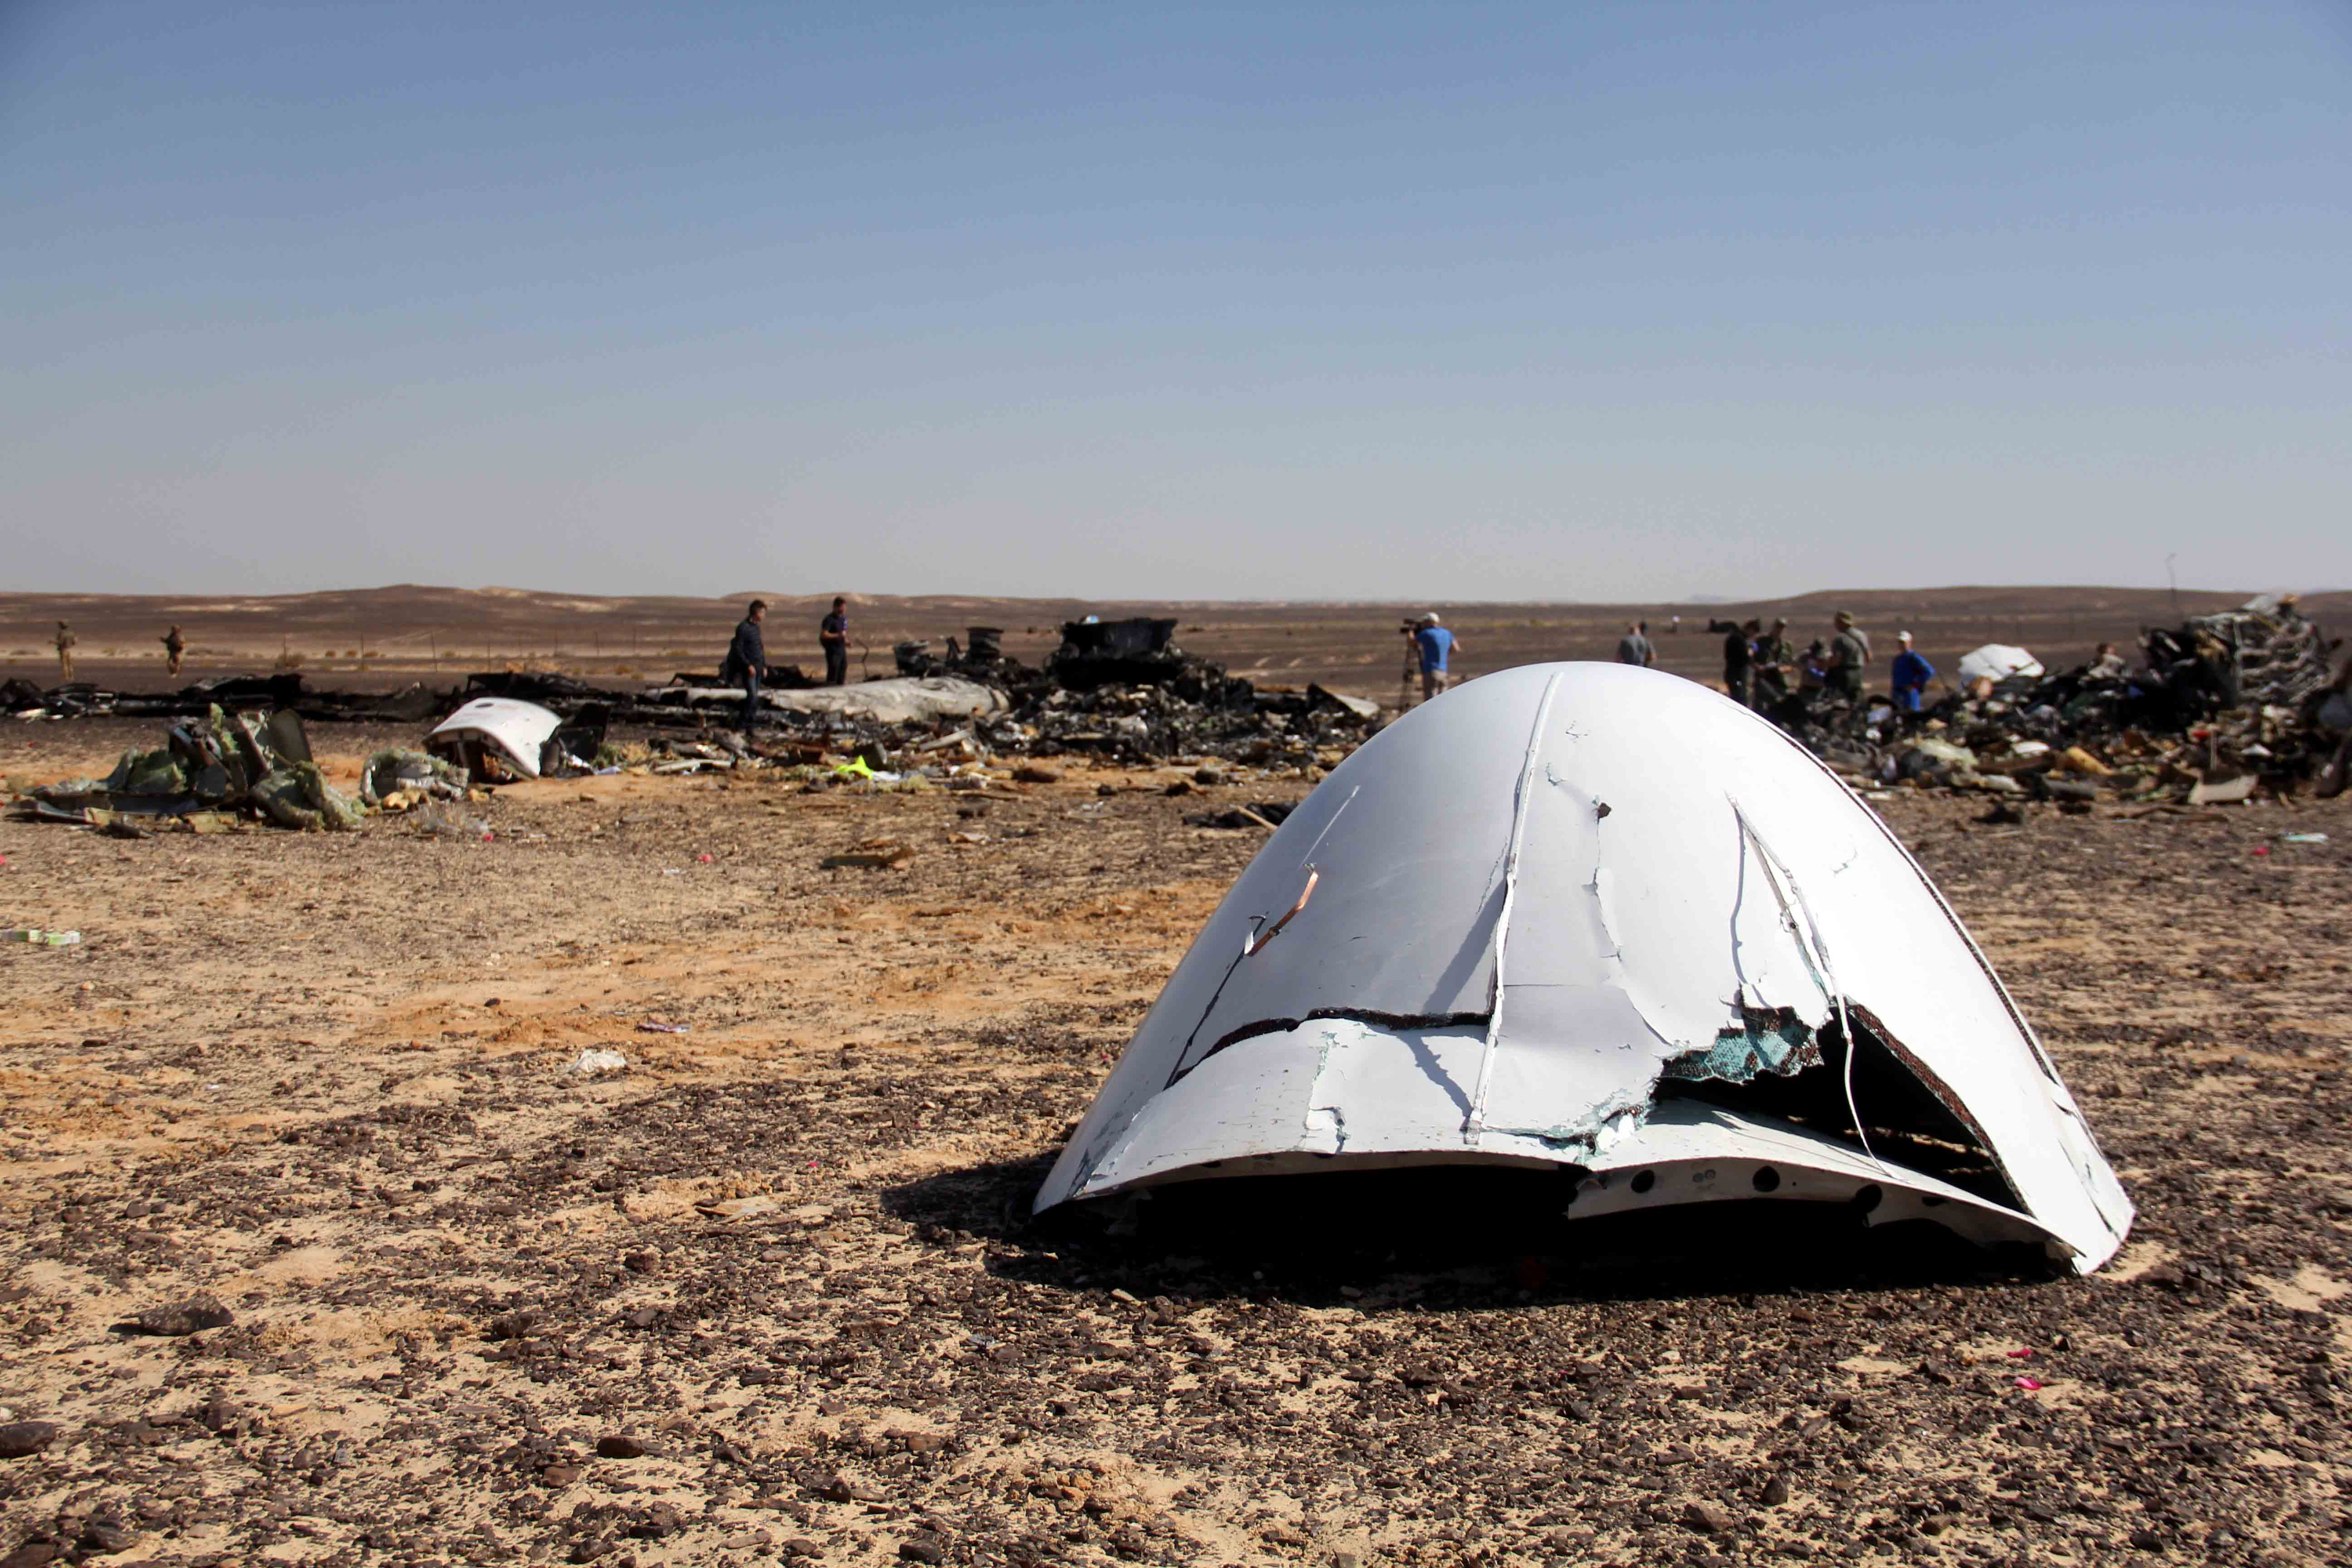 Debris of a Russian airplane is seen at the site a day after the passenger jet bound for St. Petersburg, Russia, crashed in Hassana, Egypt.